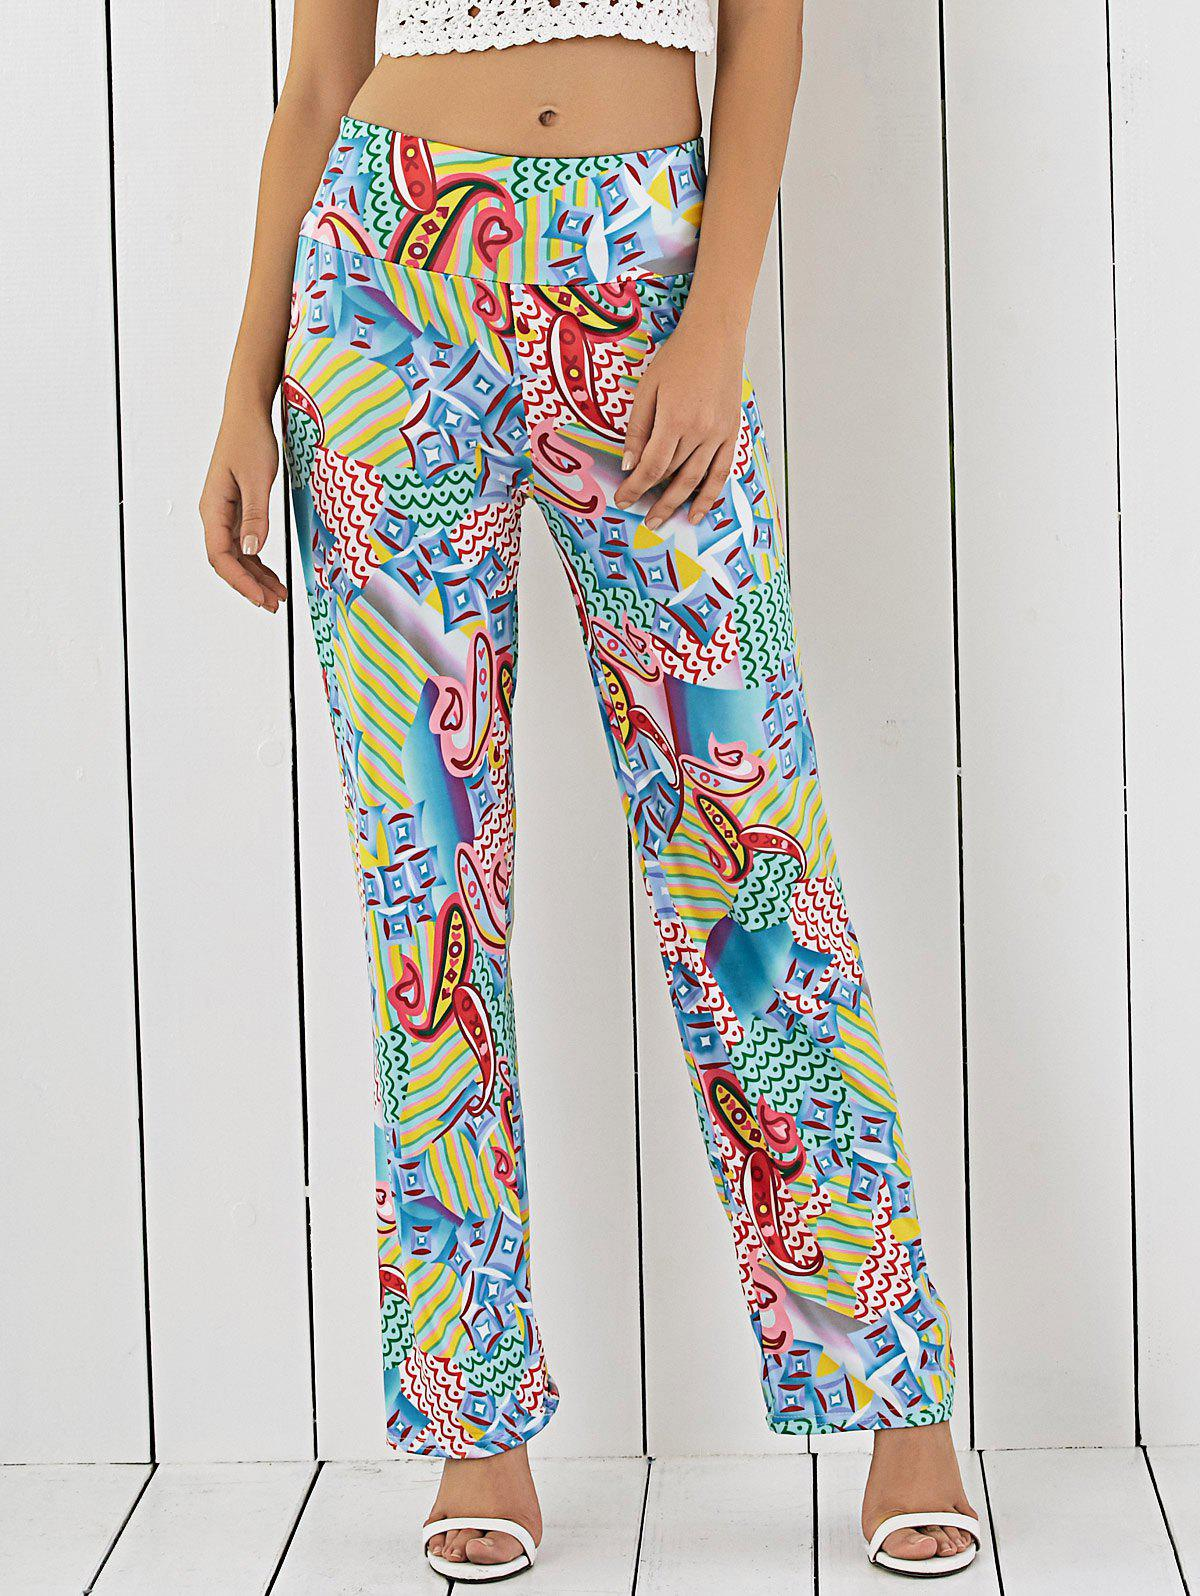 Printed Loose-Fitting Exumas Pants - COLORMIX XL